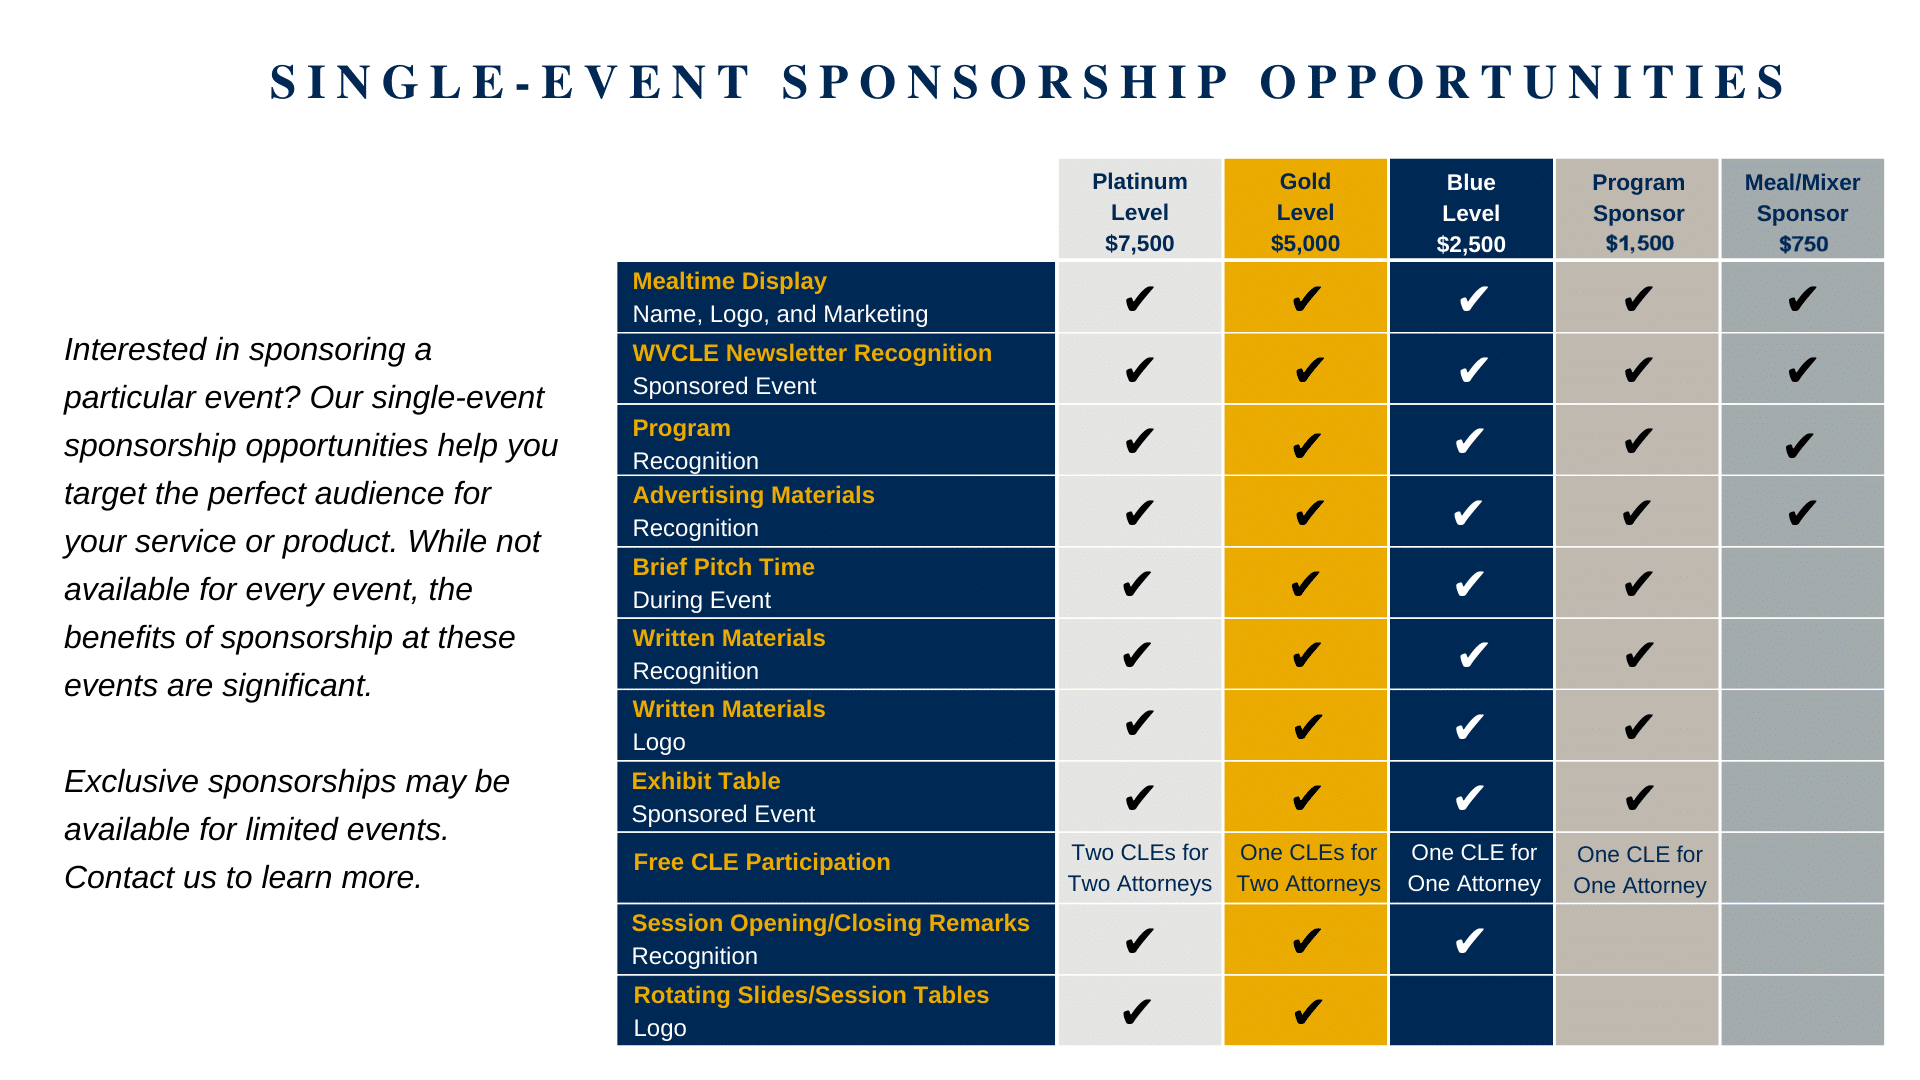 Single-Event Partnership Opportunities chart showing the multiple sponsorship levels.